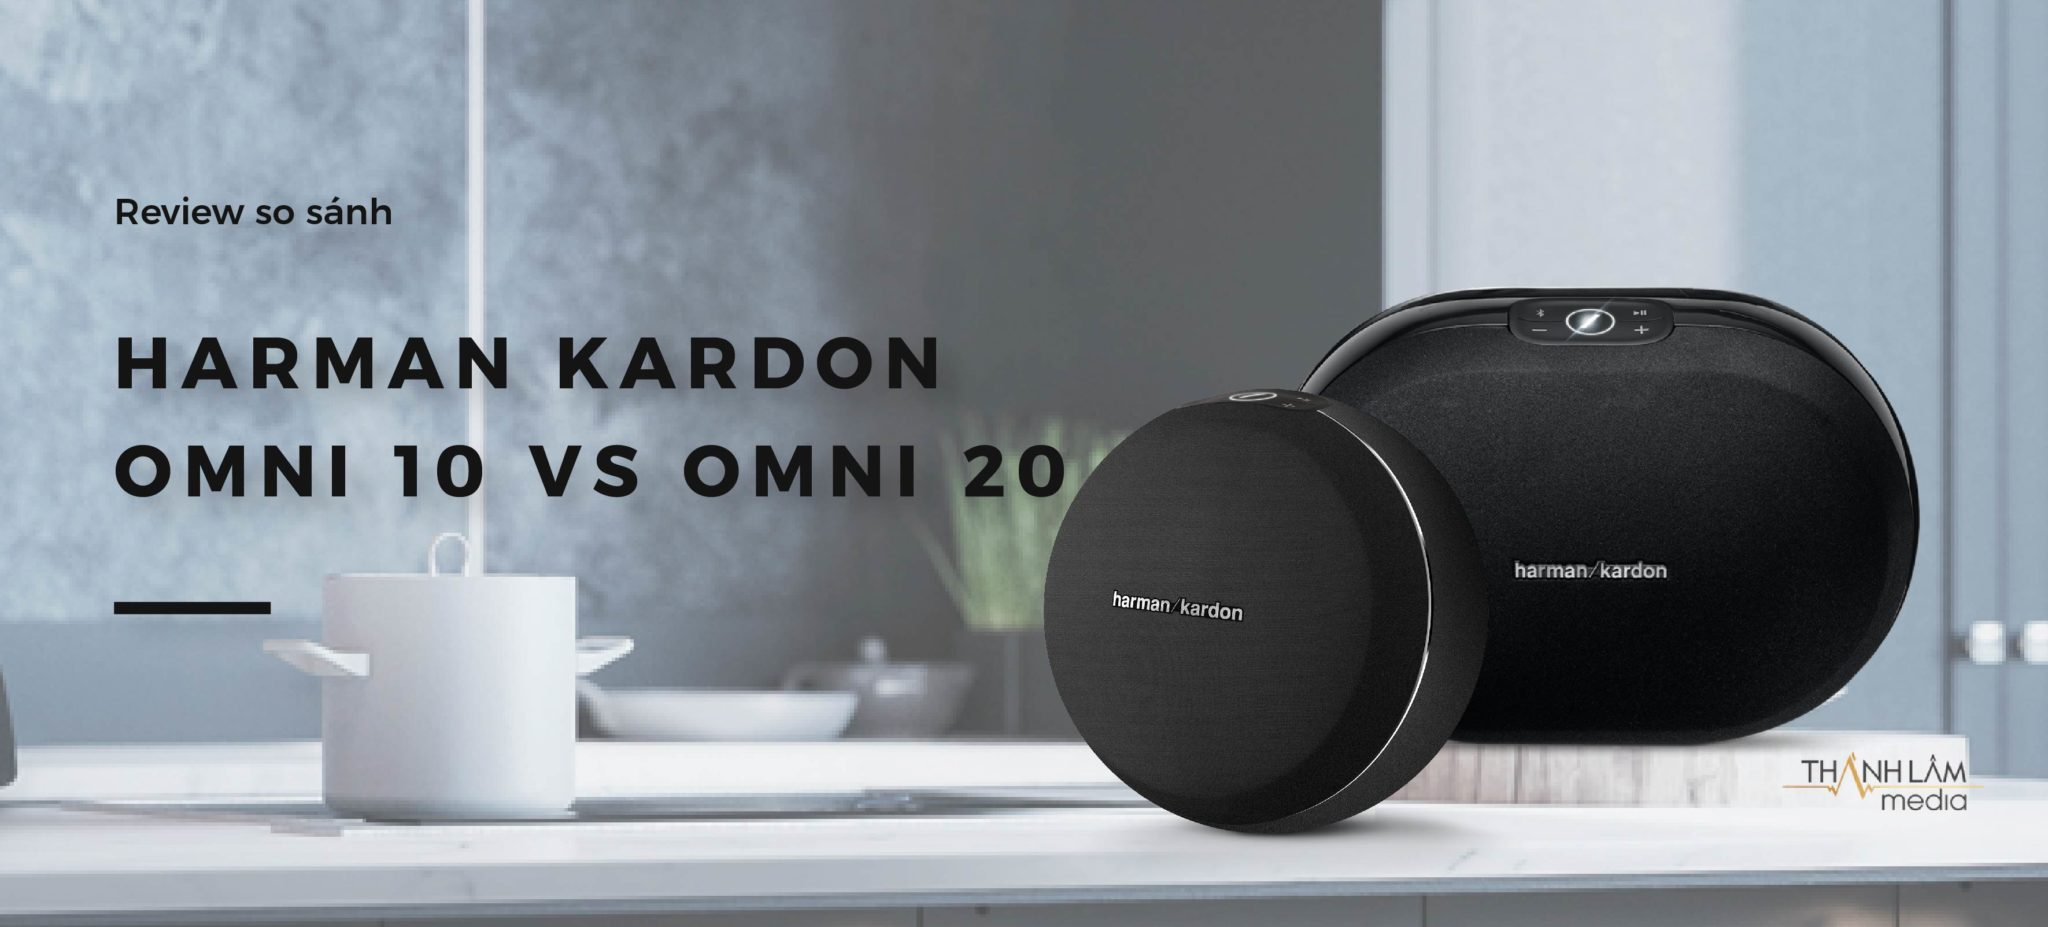 Review: So sánh Harman Kardon Omni 10 và Omni 20 1